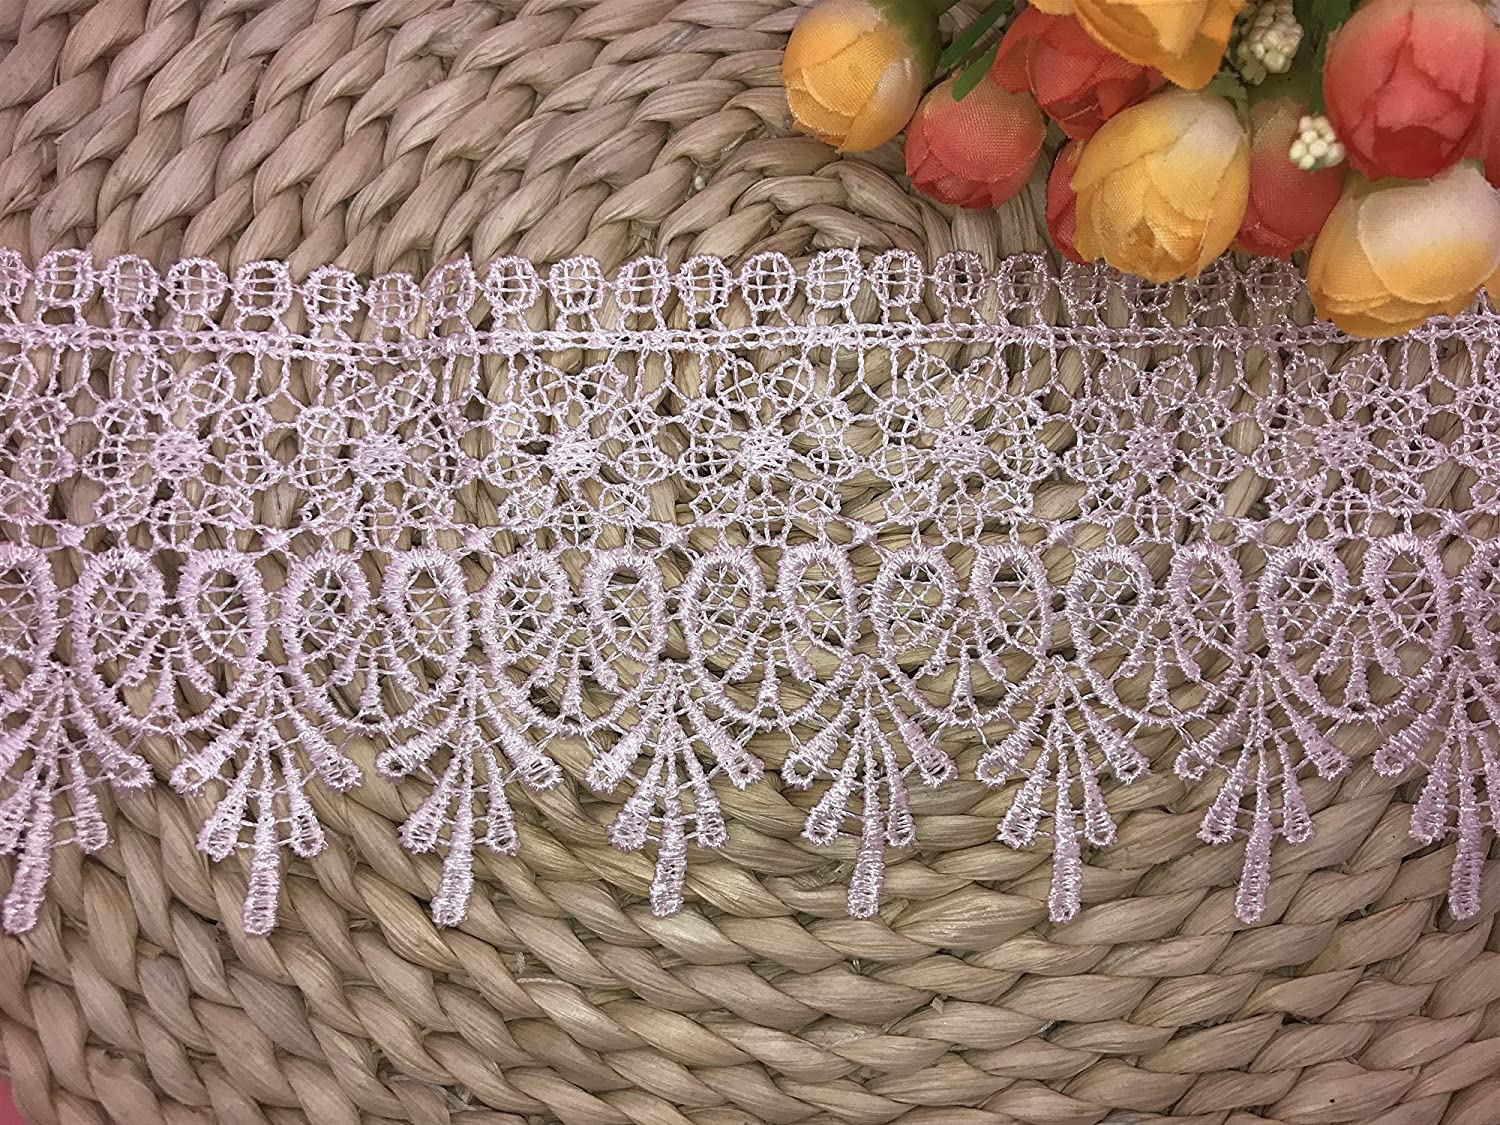 Ivory 2 Yards in one Package 9CM Width Europe Chips Pattern Inelastic Embroidery Lace Trim,Curtain Tablecloth Slipcover Bridal DIY Clothing//Accessories.